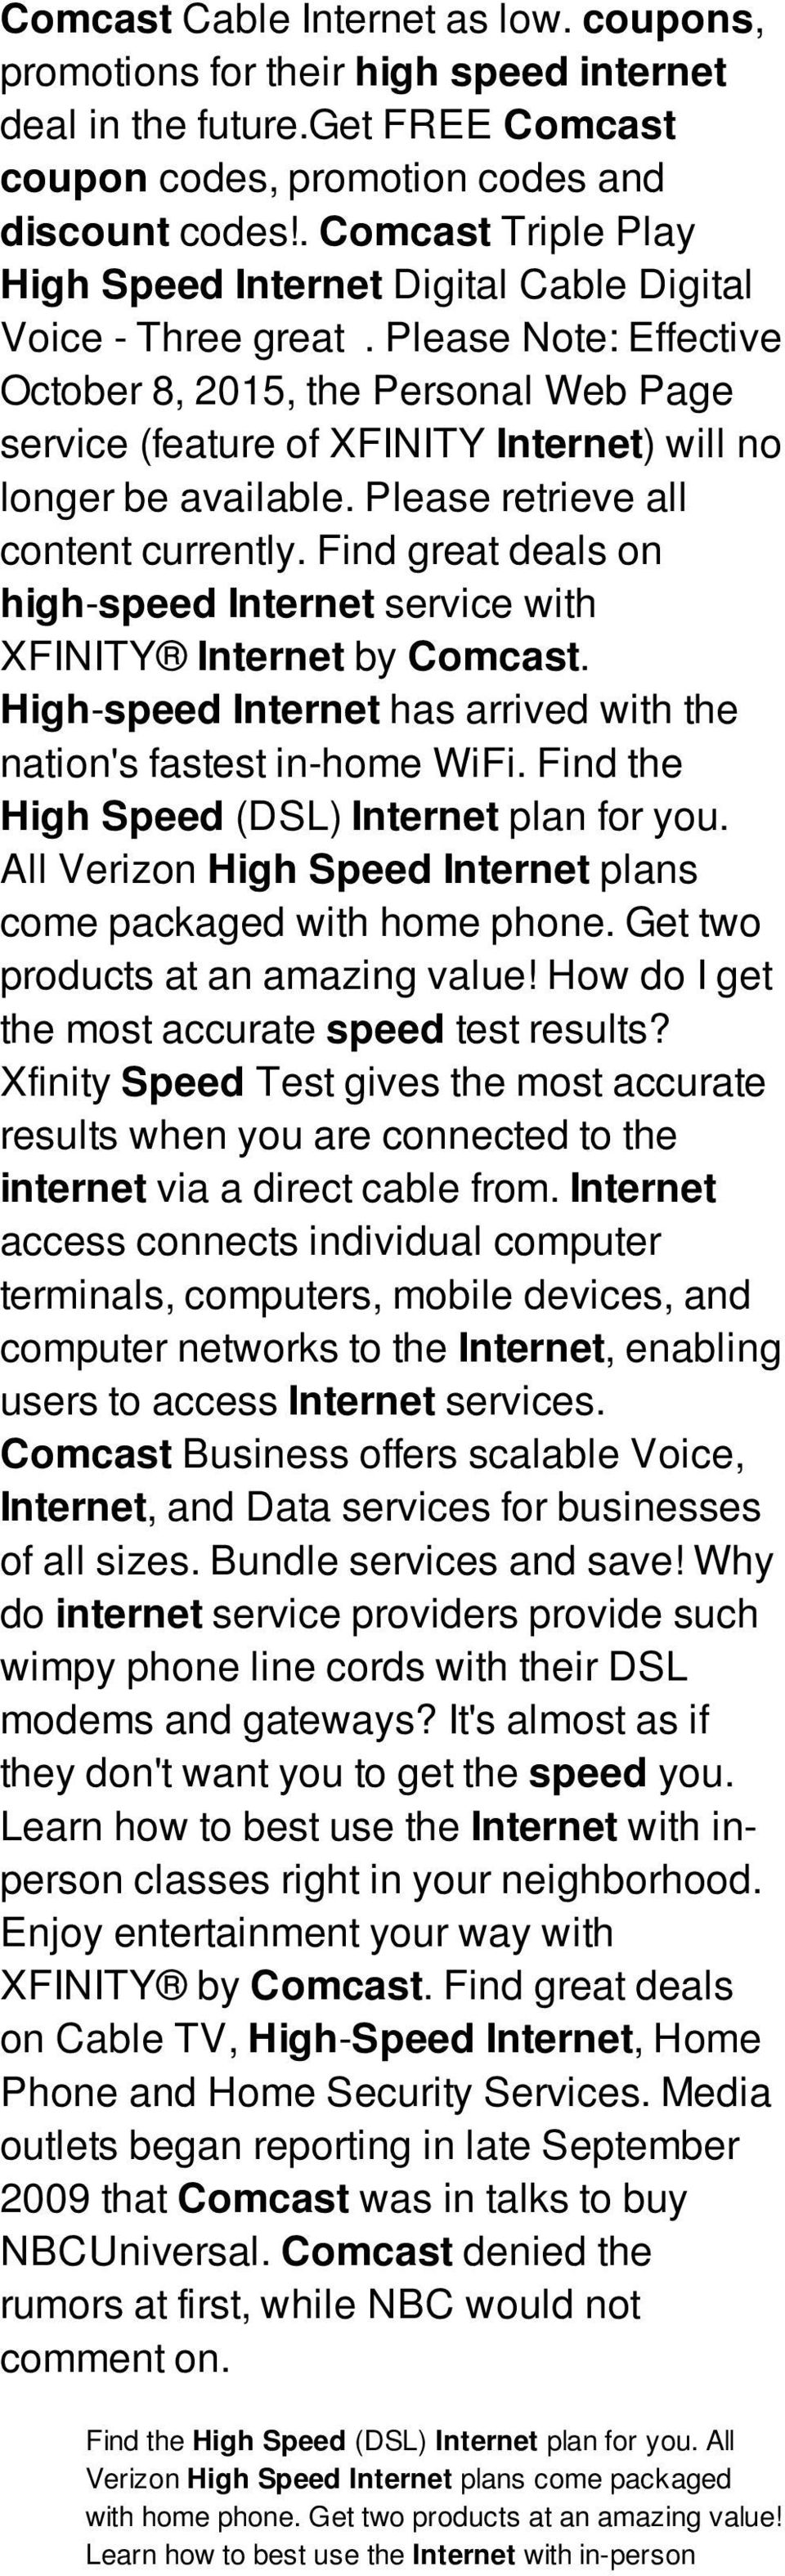 Comcast high speed internet coupons: aarvee investments nigeria